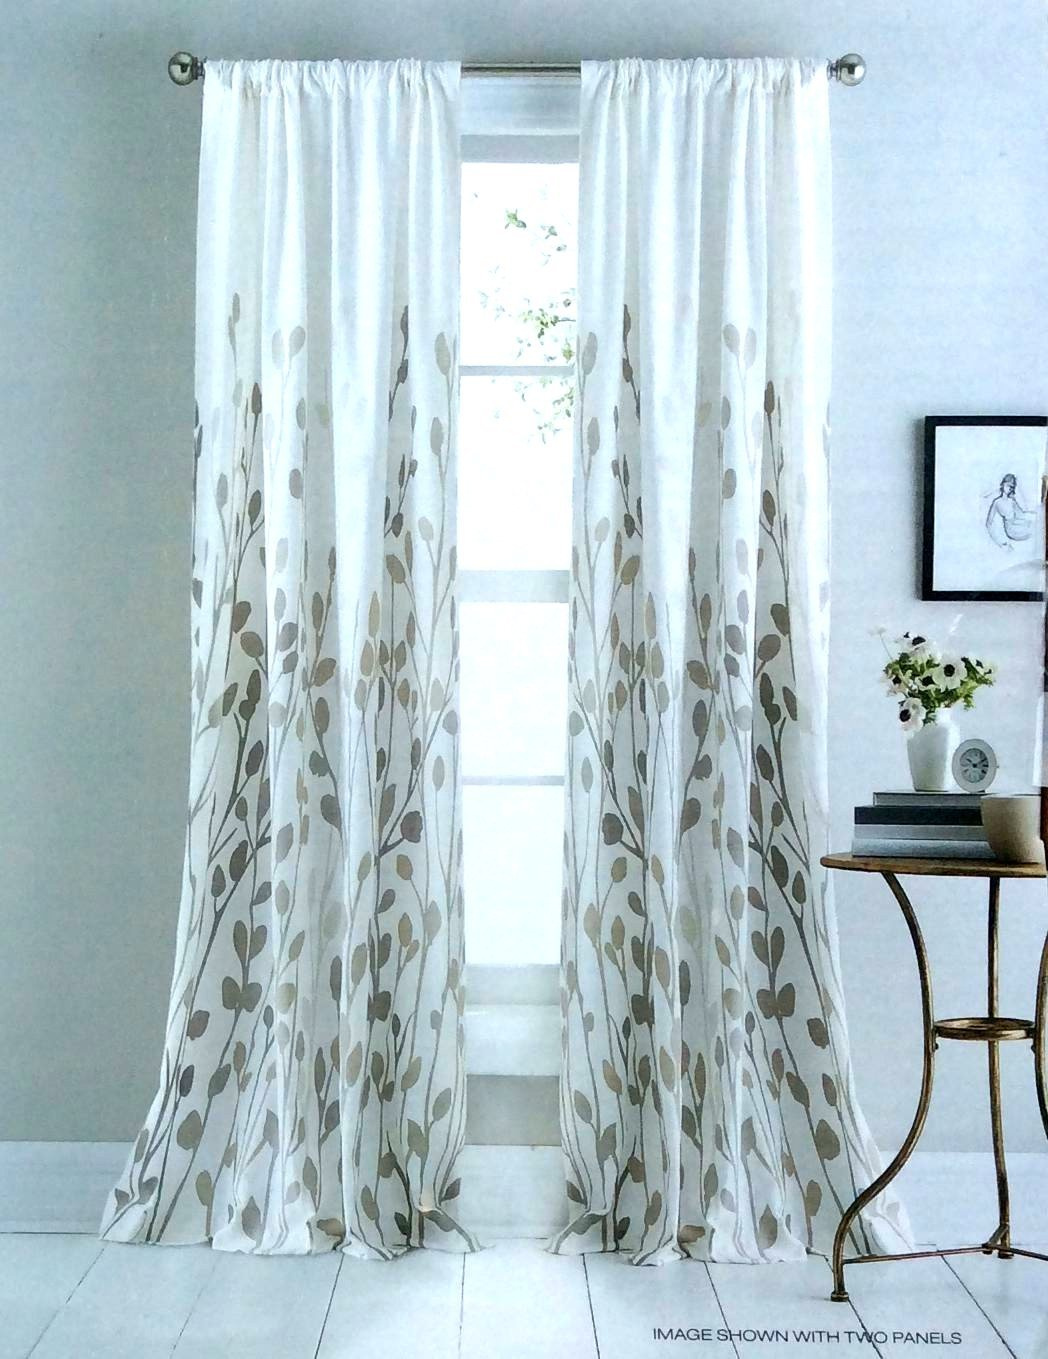 Amazon.com: DKNY Carroll Gardens Floral Road Pocket Curtains 100% Cotton 50  By 96 Inch Set Of 2 Floral Window Panels White Beige Tan Taupe Flowers  Branches: ...